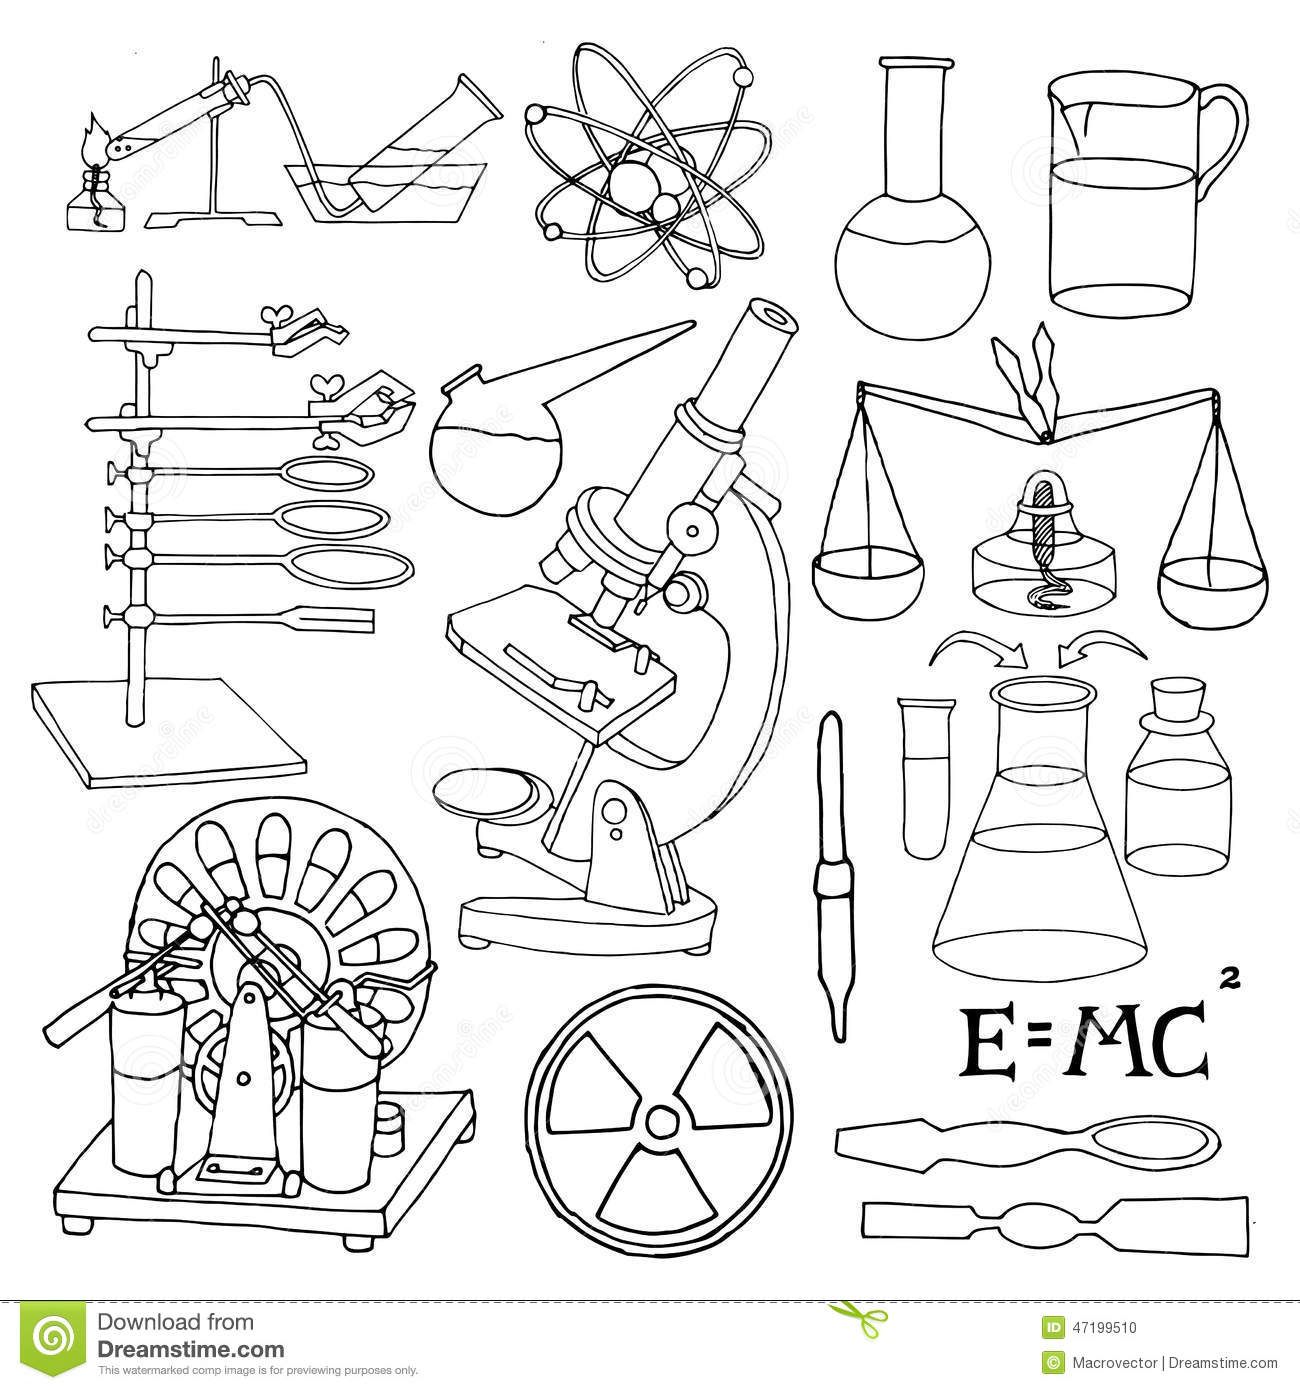 Science sketch icons stock vector. Image of science, icons